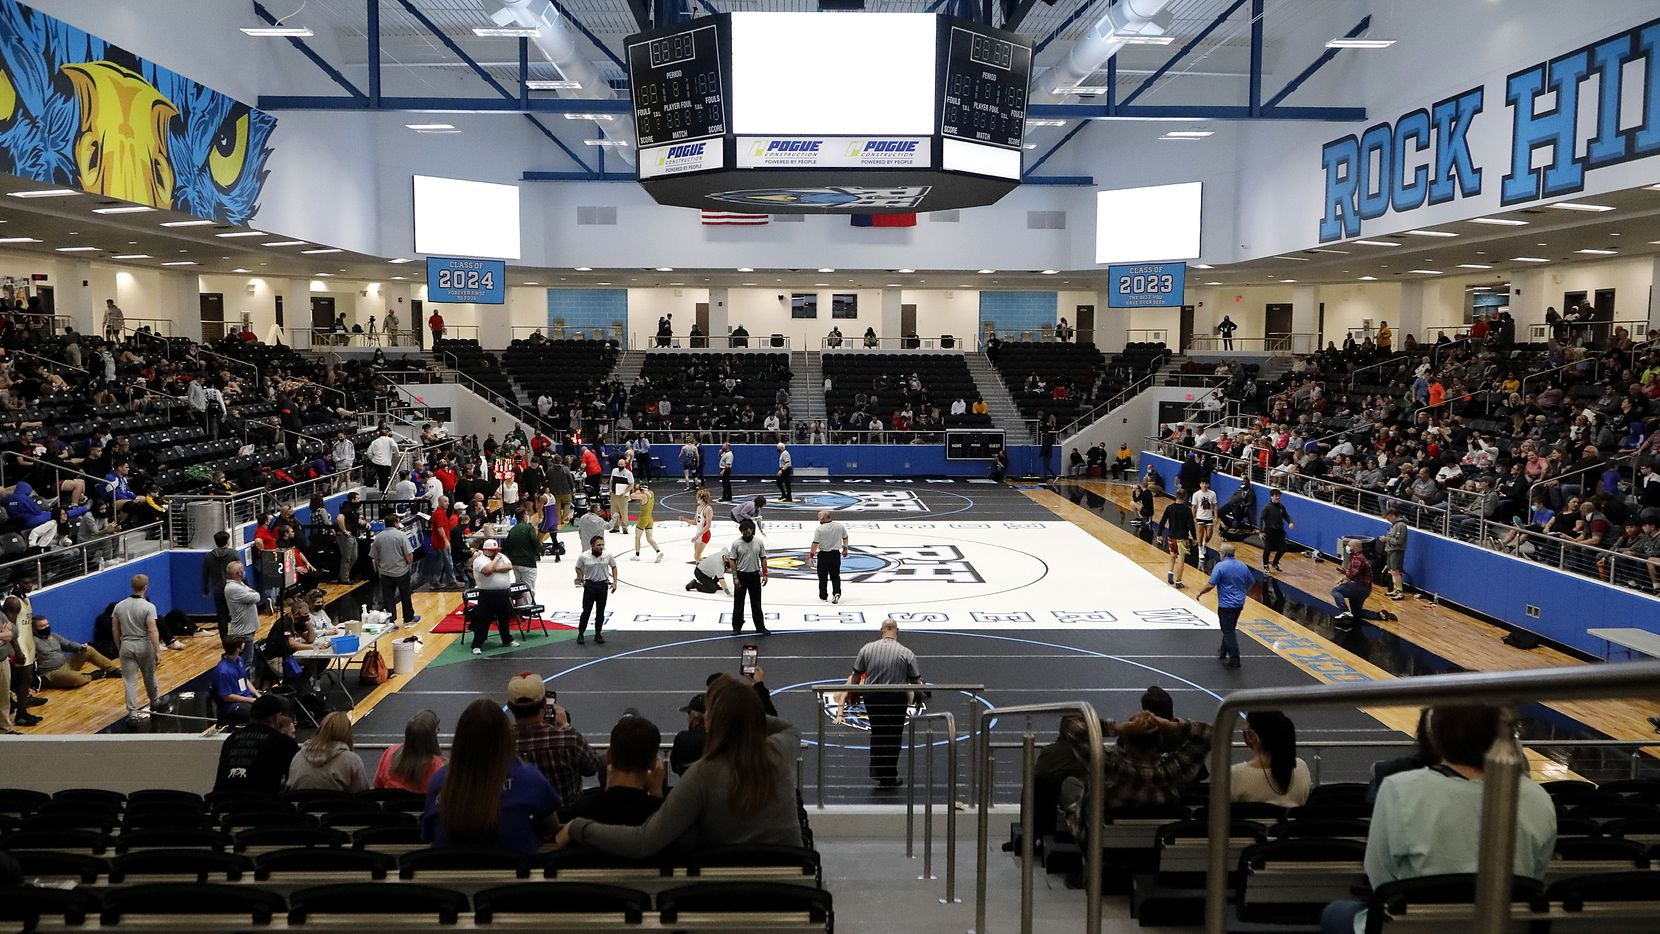 The gym used three matts for the competition during the UIL Region II wrestling meet held at Rockhill High School in Frisco on Saturday, April 17, 2021.